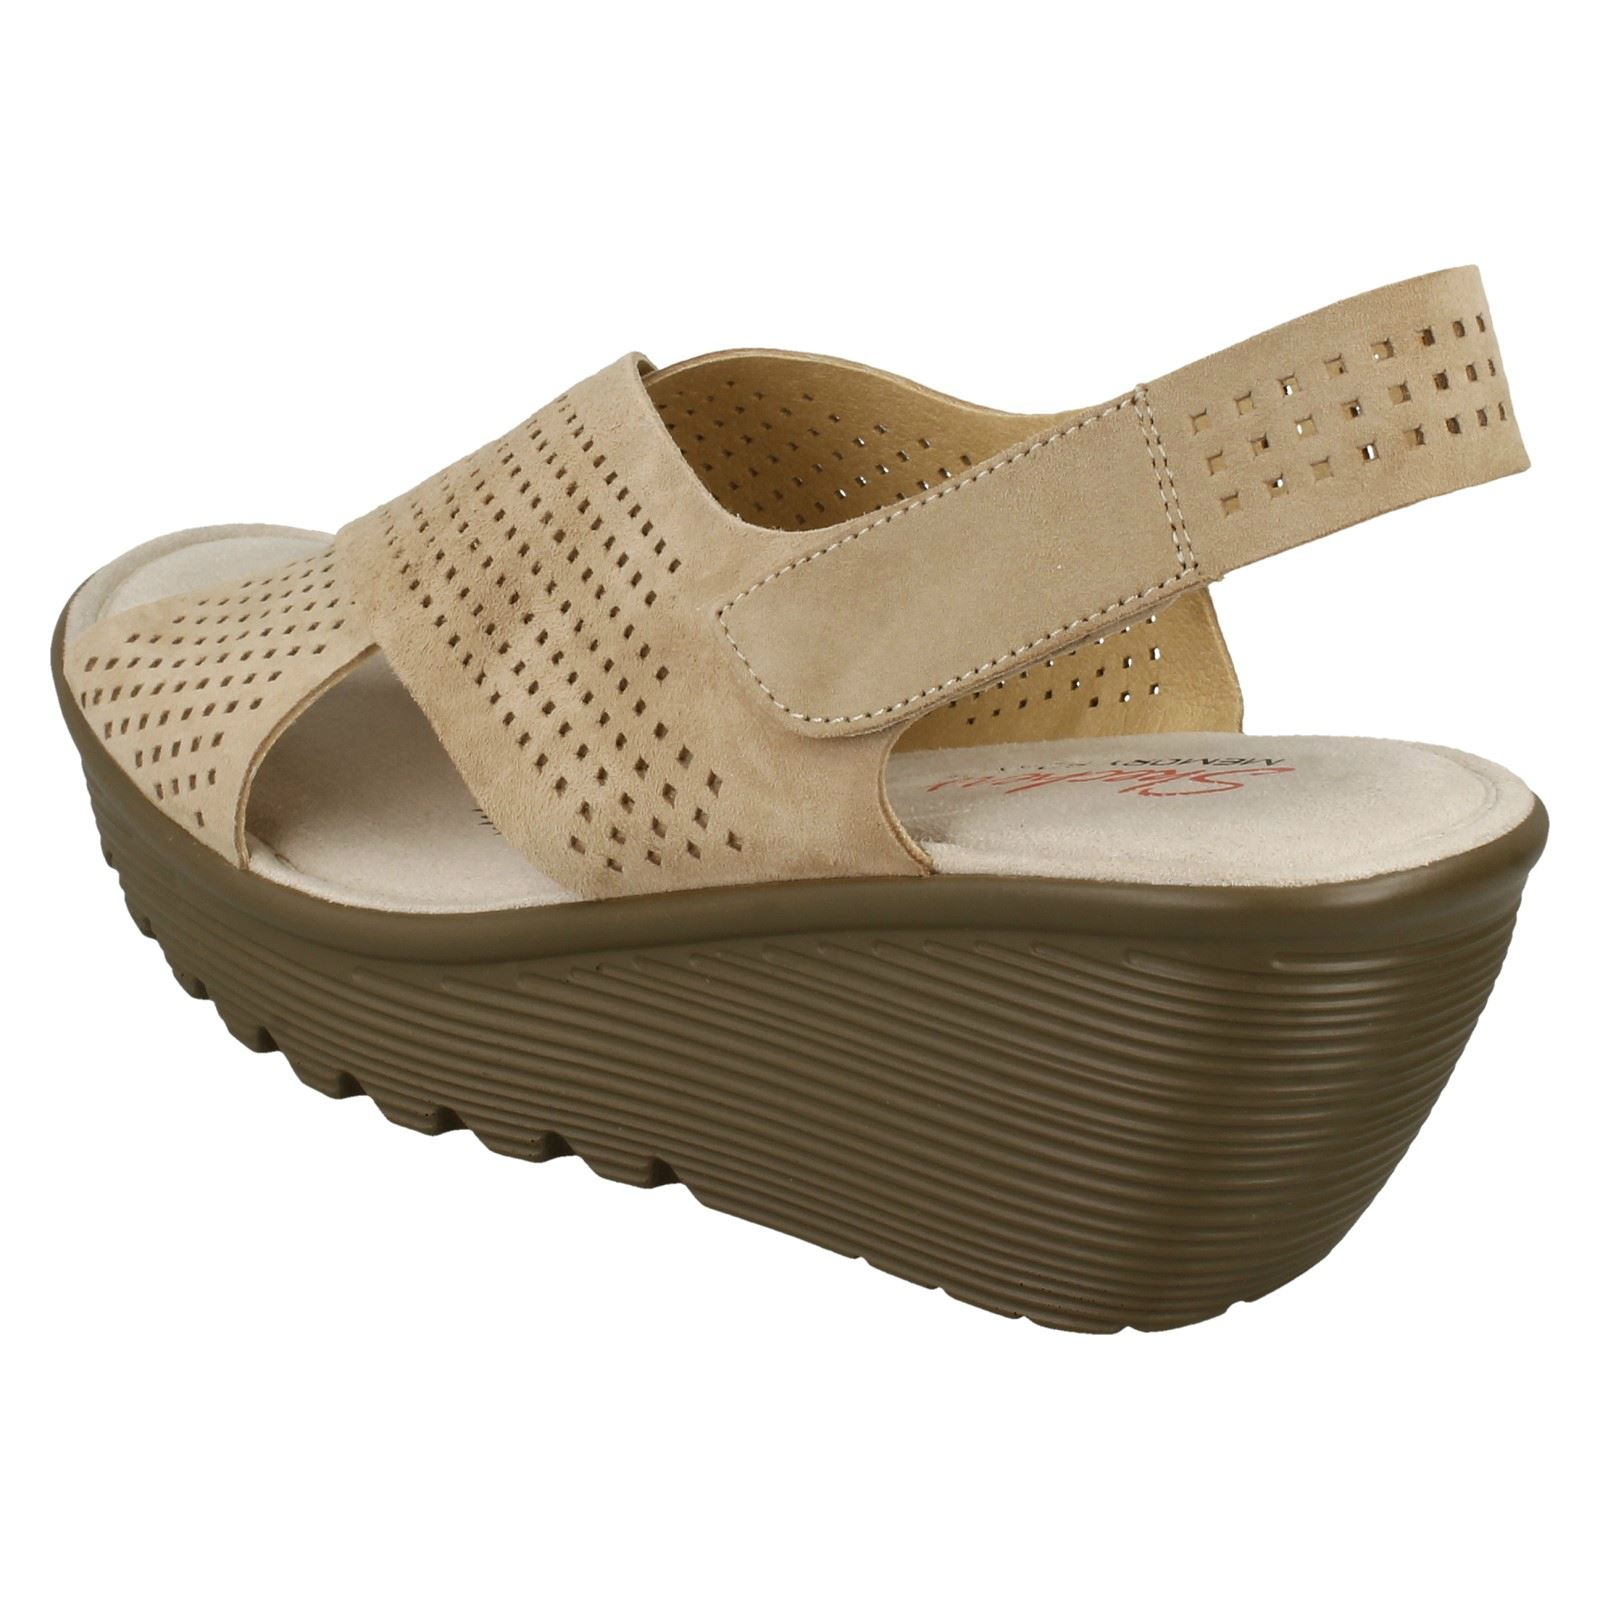 Femmes-Skechers-Plateforme-Bout-Ouvert-Sandales-parallele-034-infrastructures-034